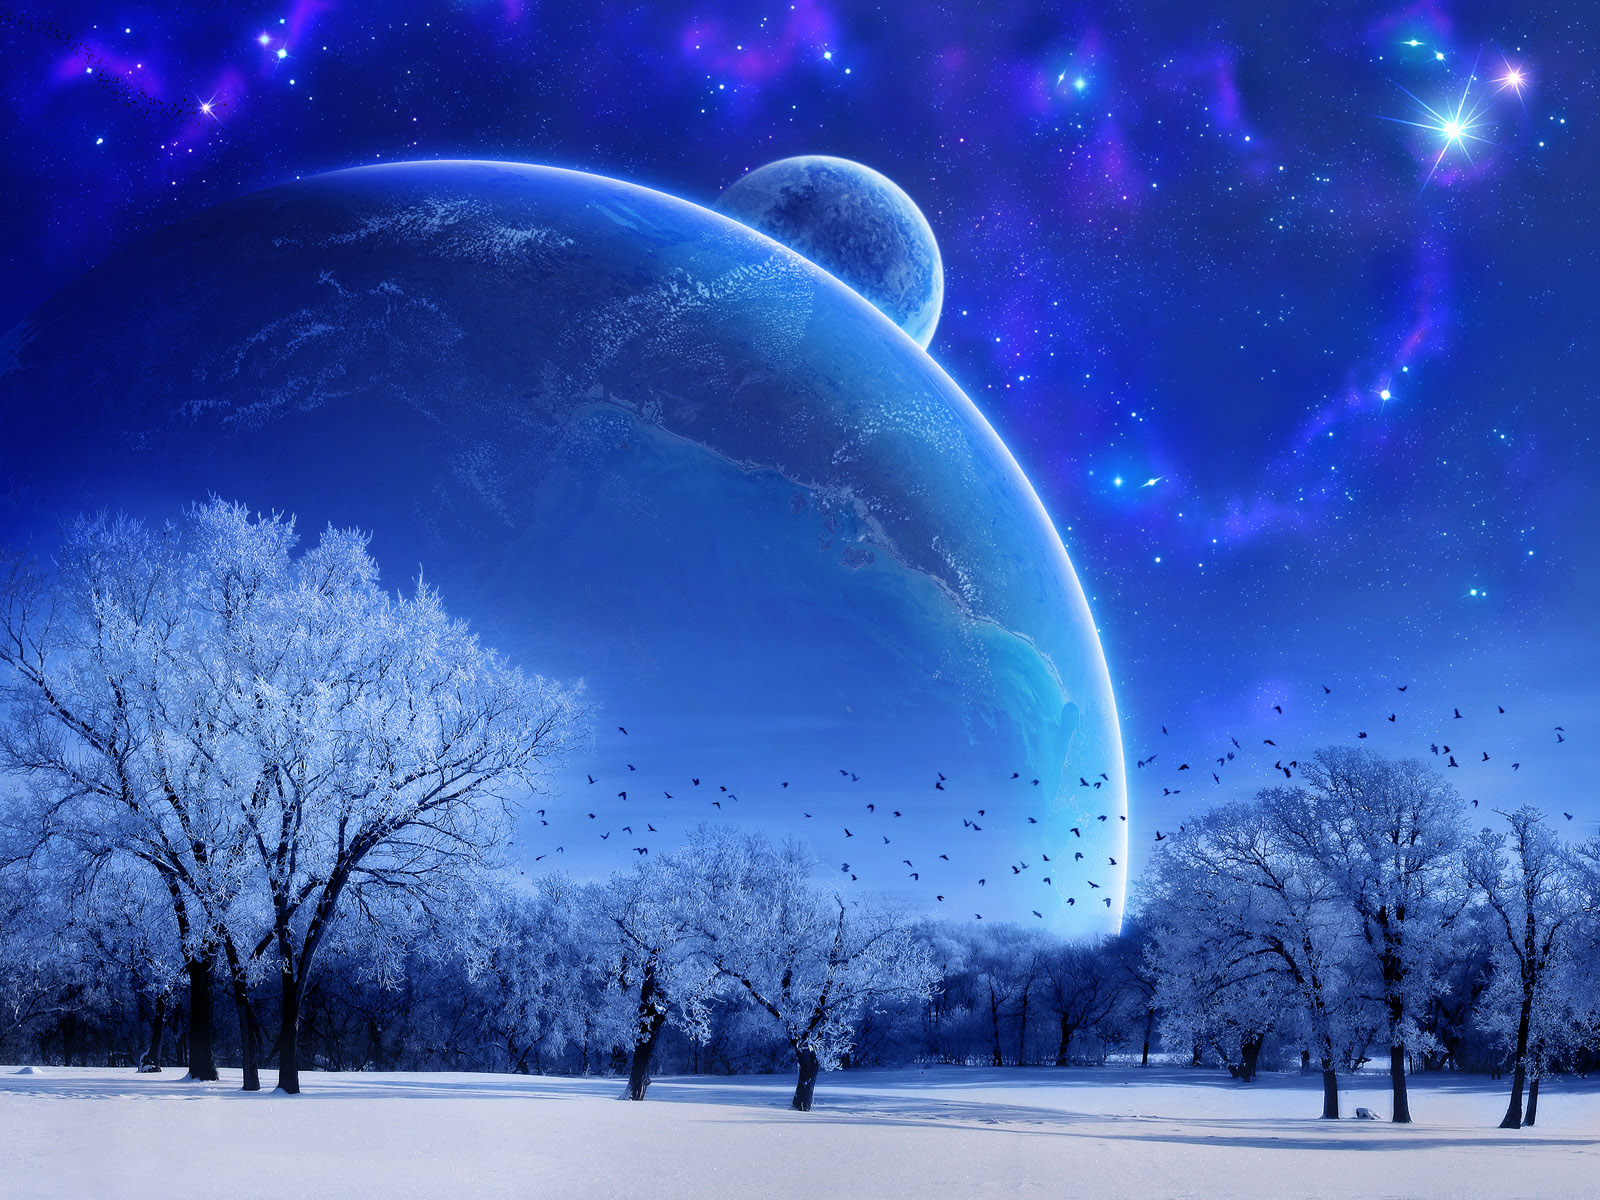 download cool space wallpaper which is under the space wallpapers ...